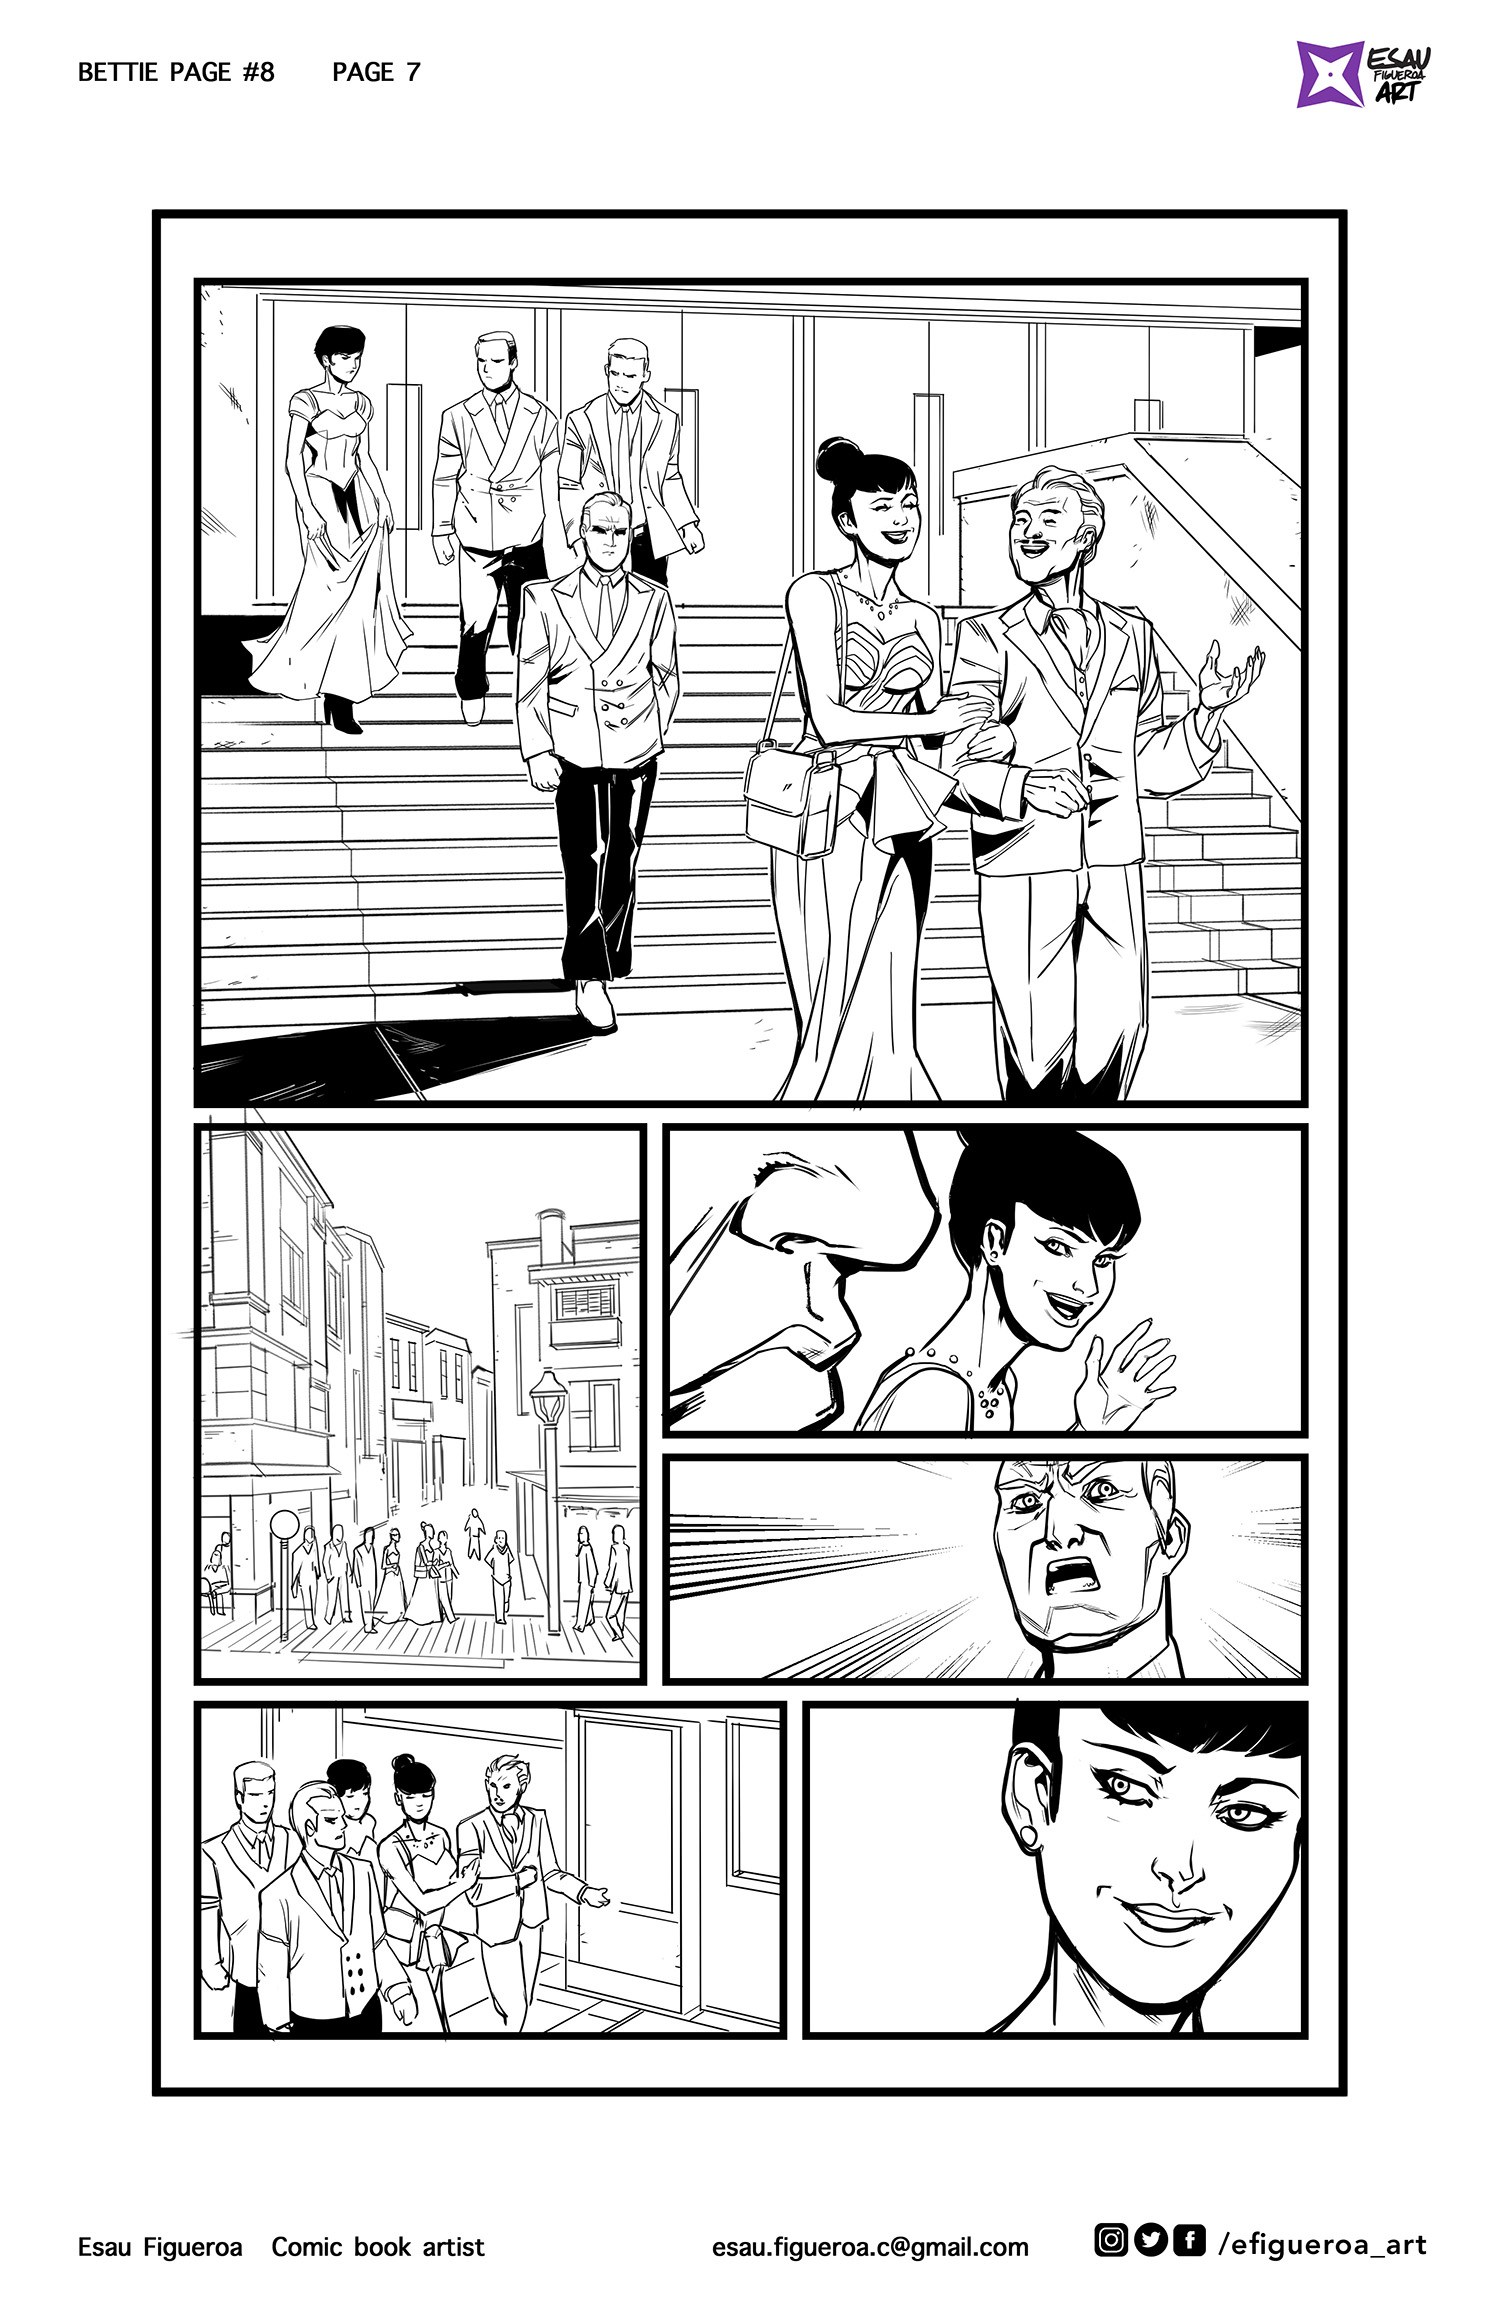 Bettie Page #8 pg. 7